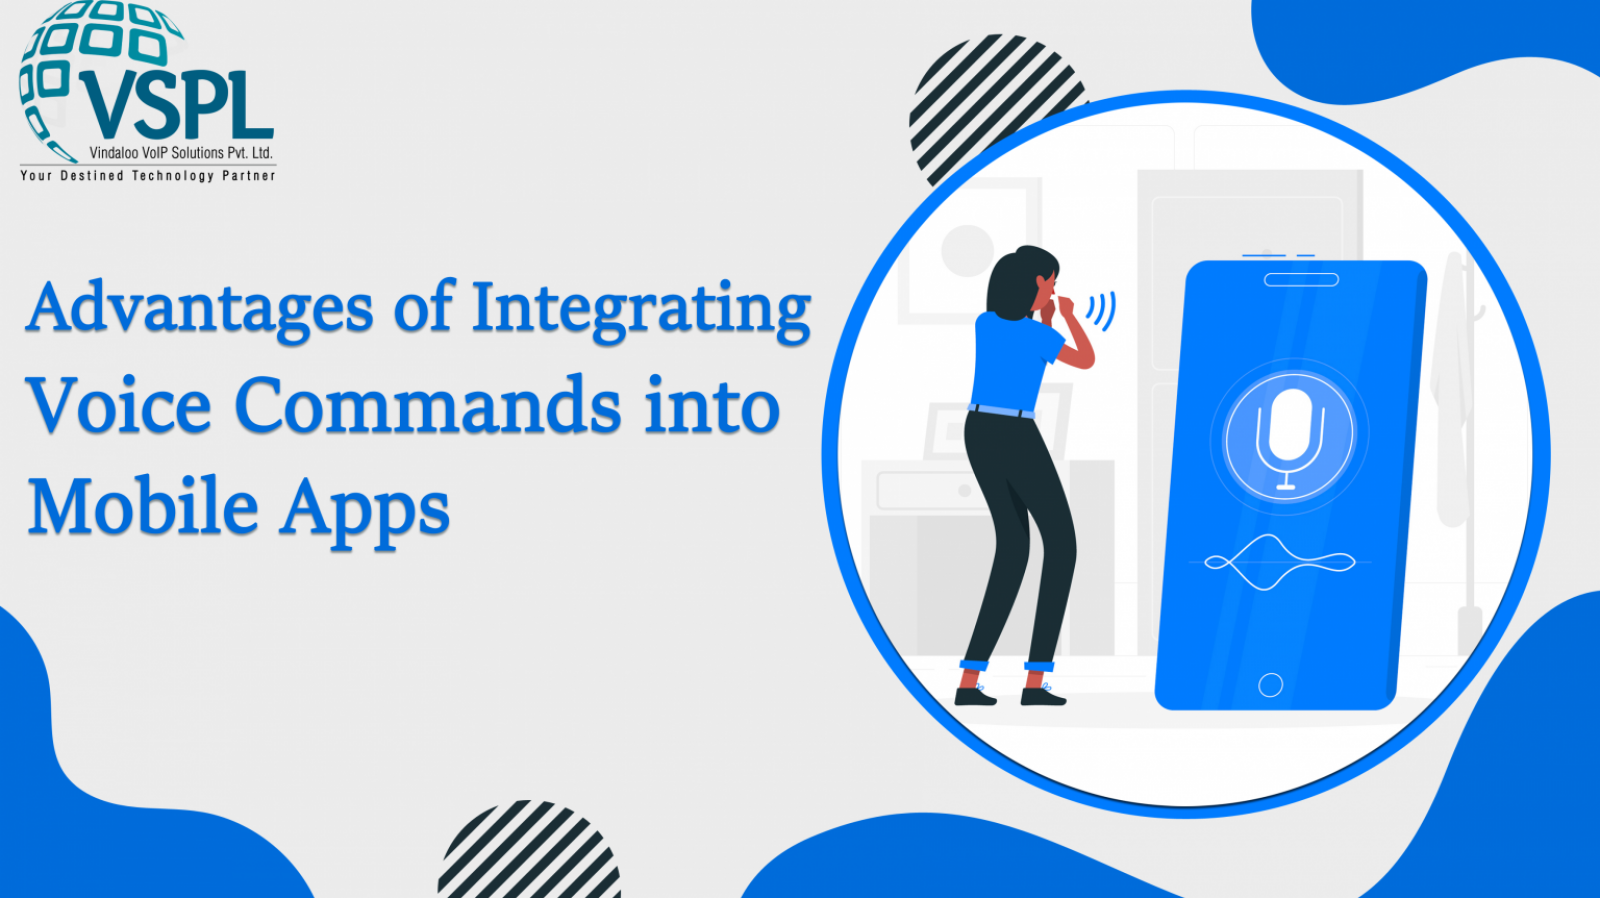 Advantages of Integrating Voice Commands into Mobile Apps